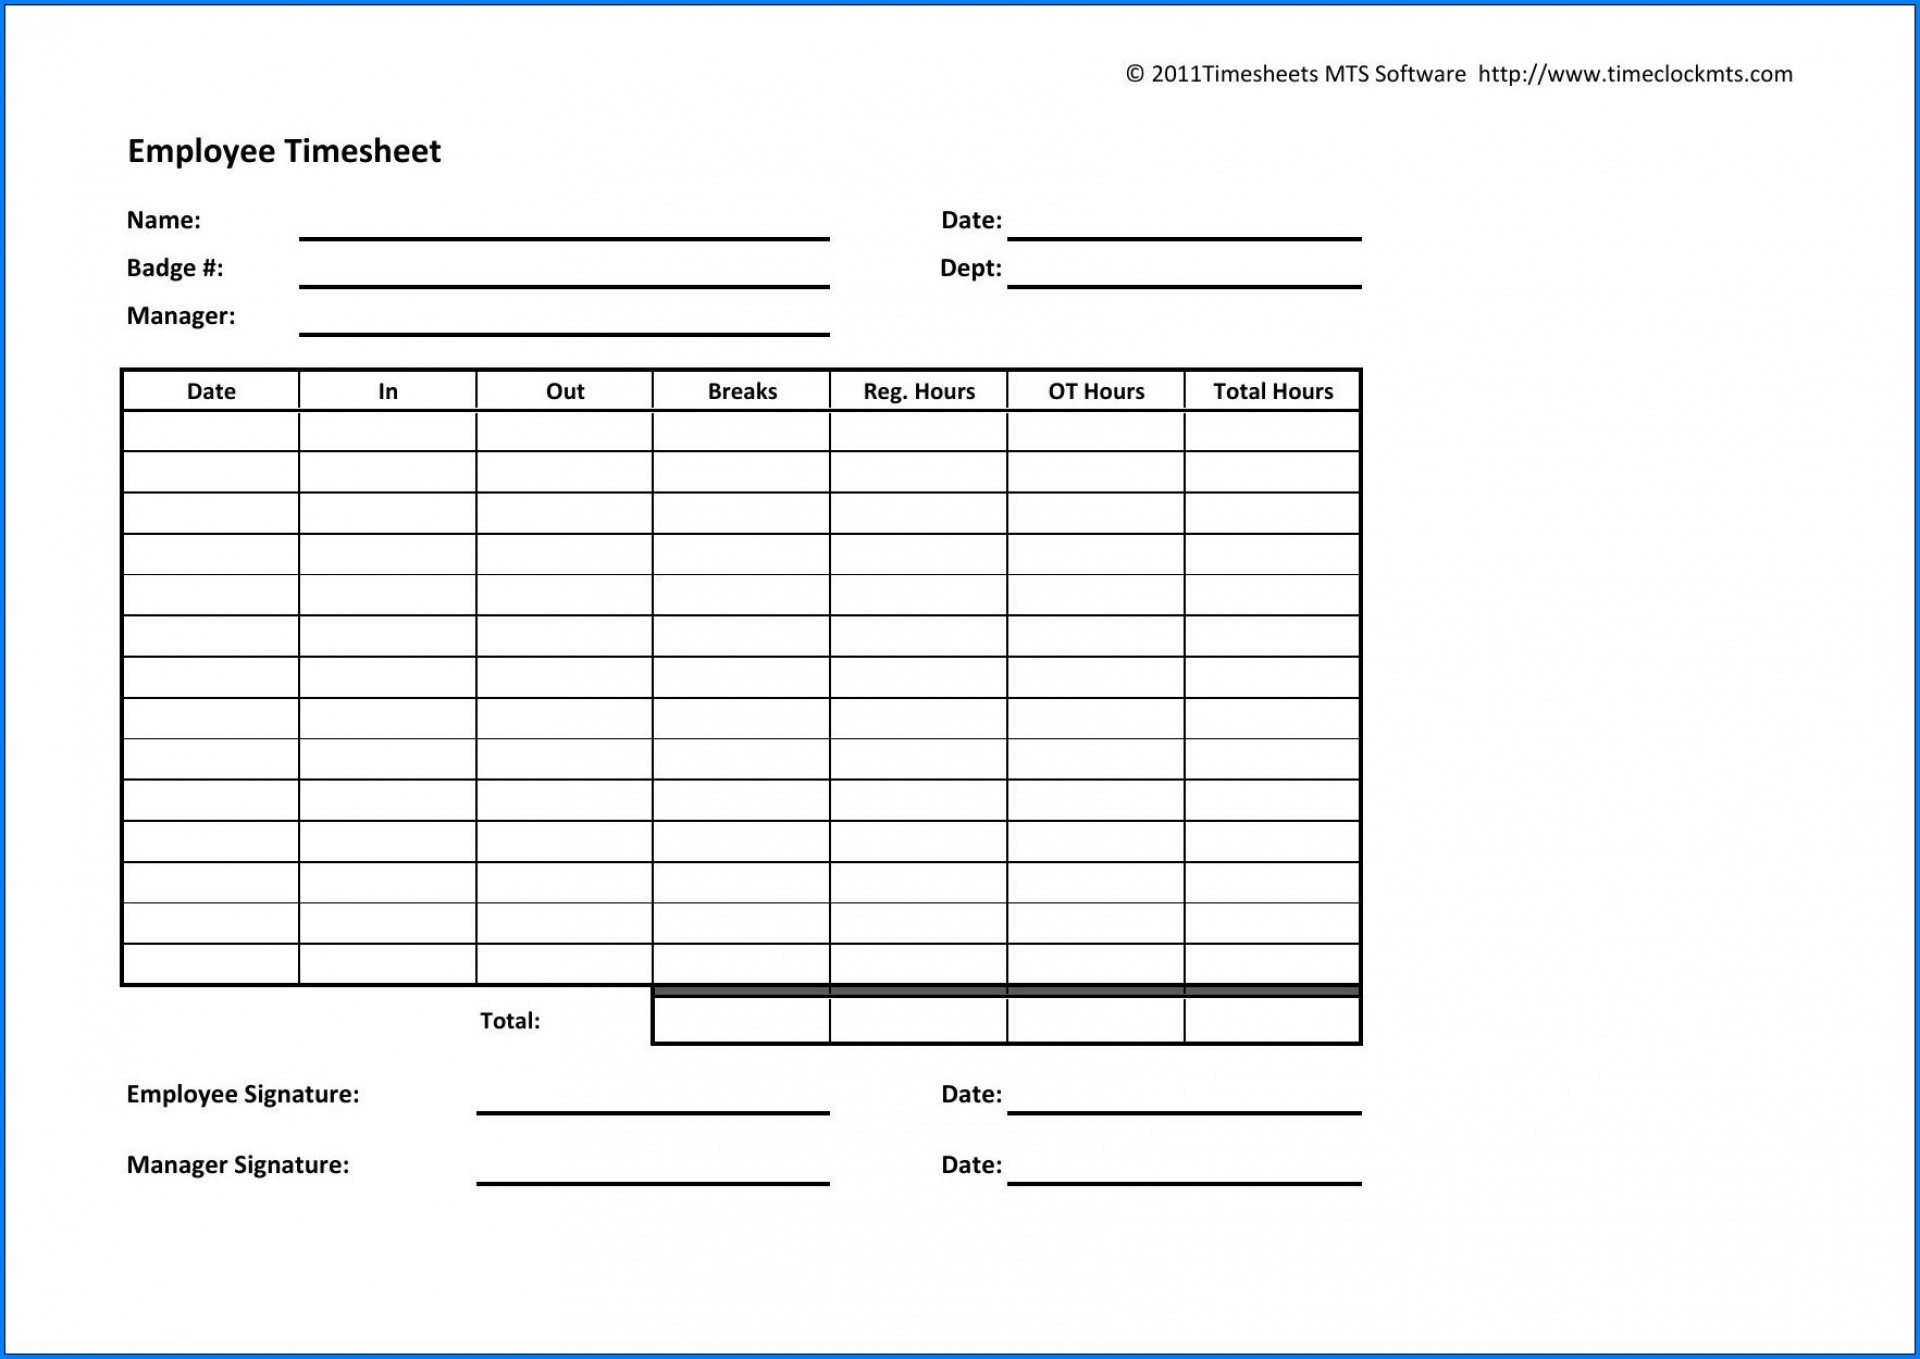 003 Archaicawful Employee Time Card Printable Idea  Timesheet Template Excel Free Multiple Sheet1920